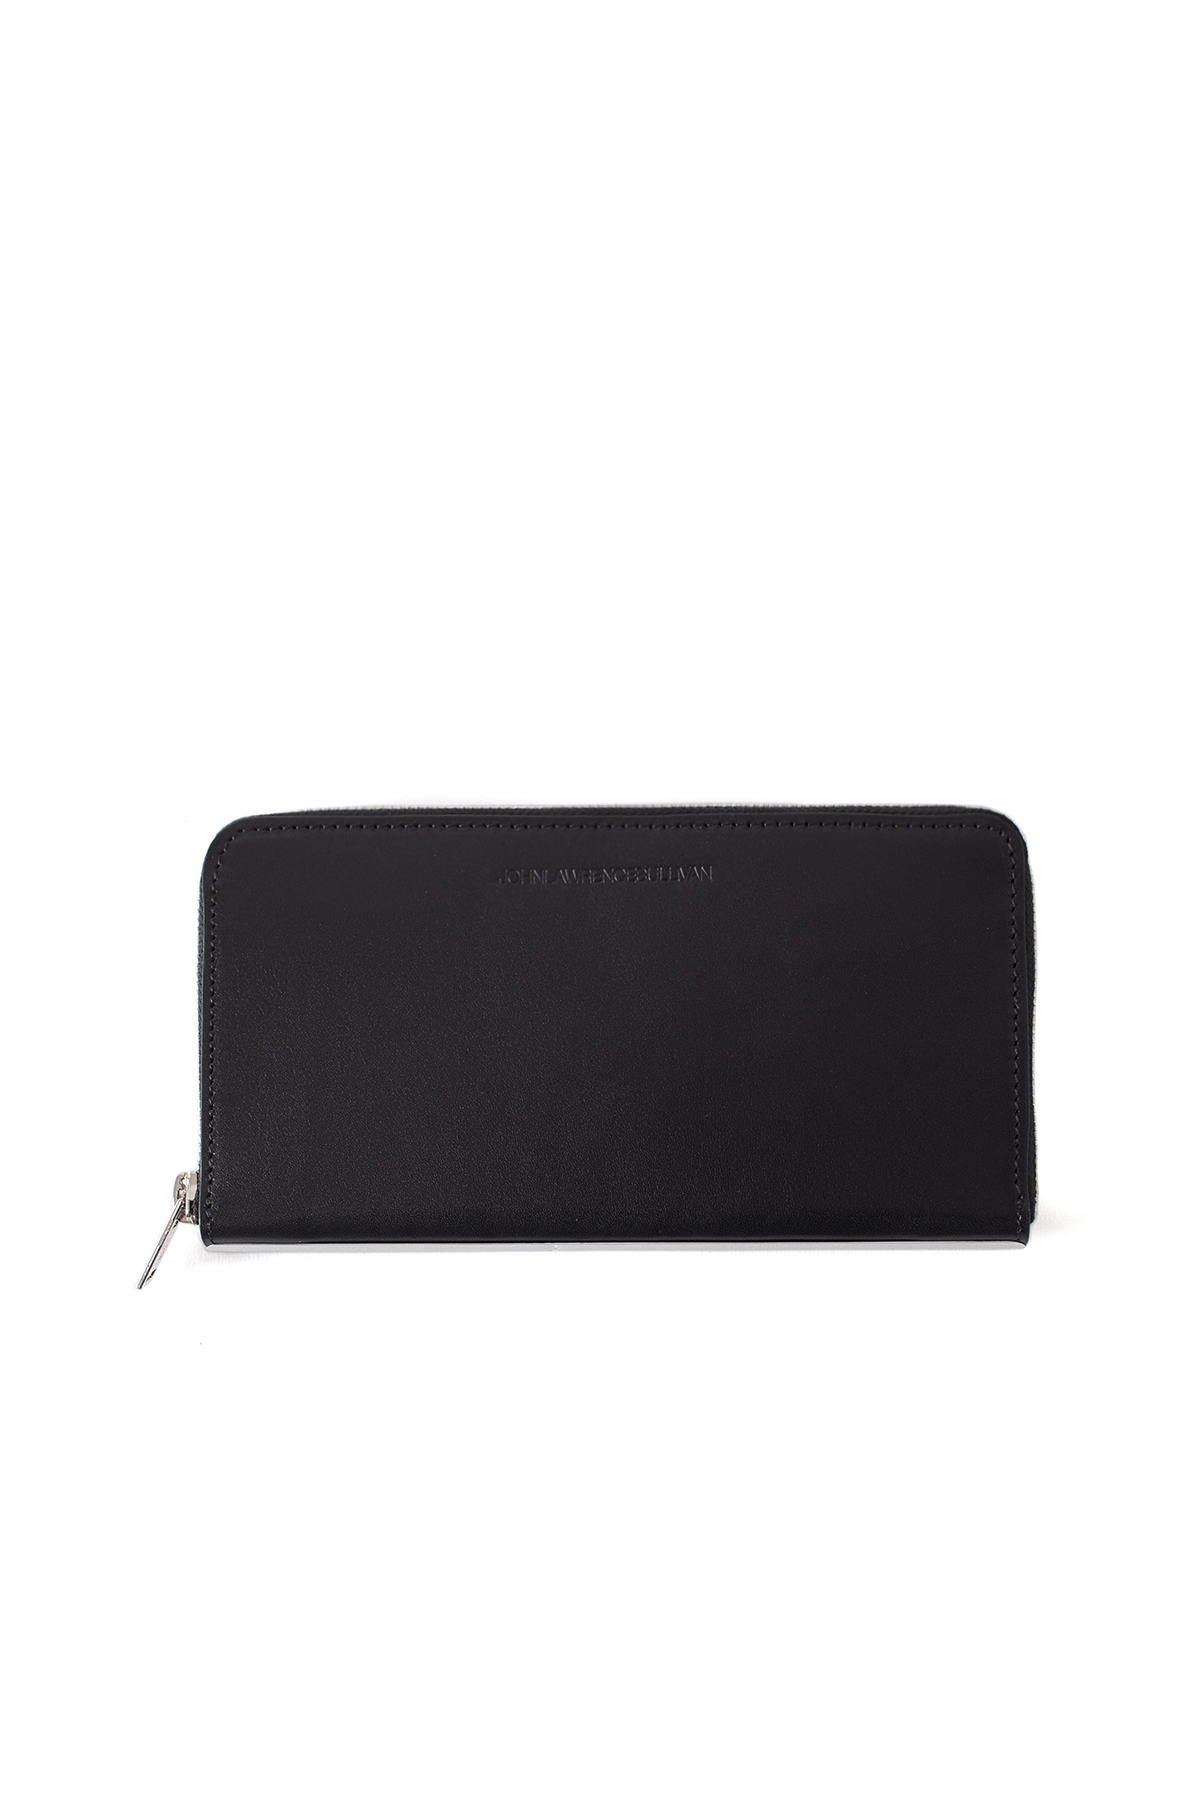 JOHN LAWRENCE SULLIVAN : Zipped Round Wallet (Black)